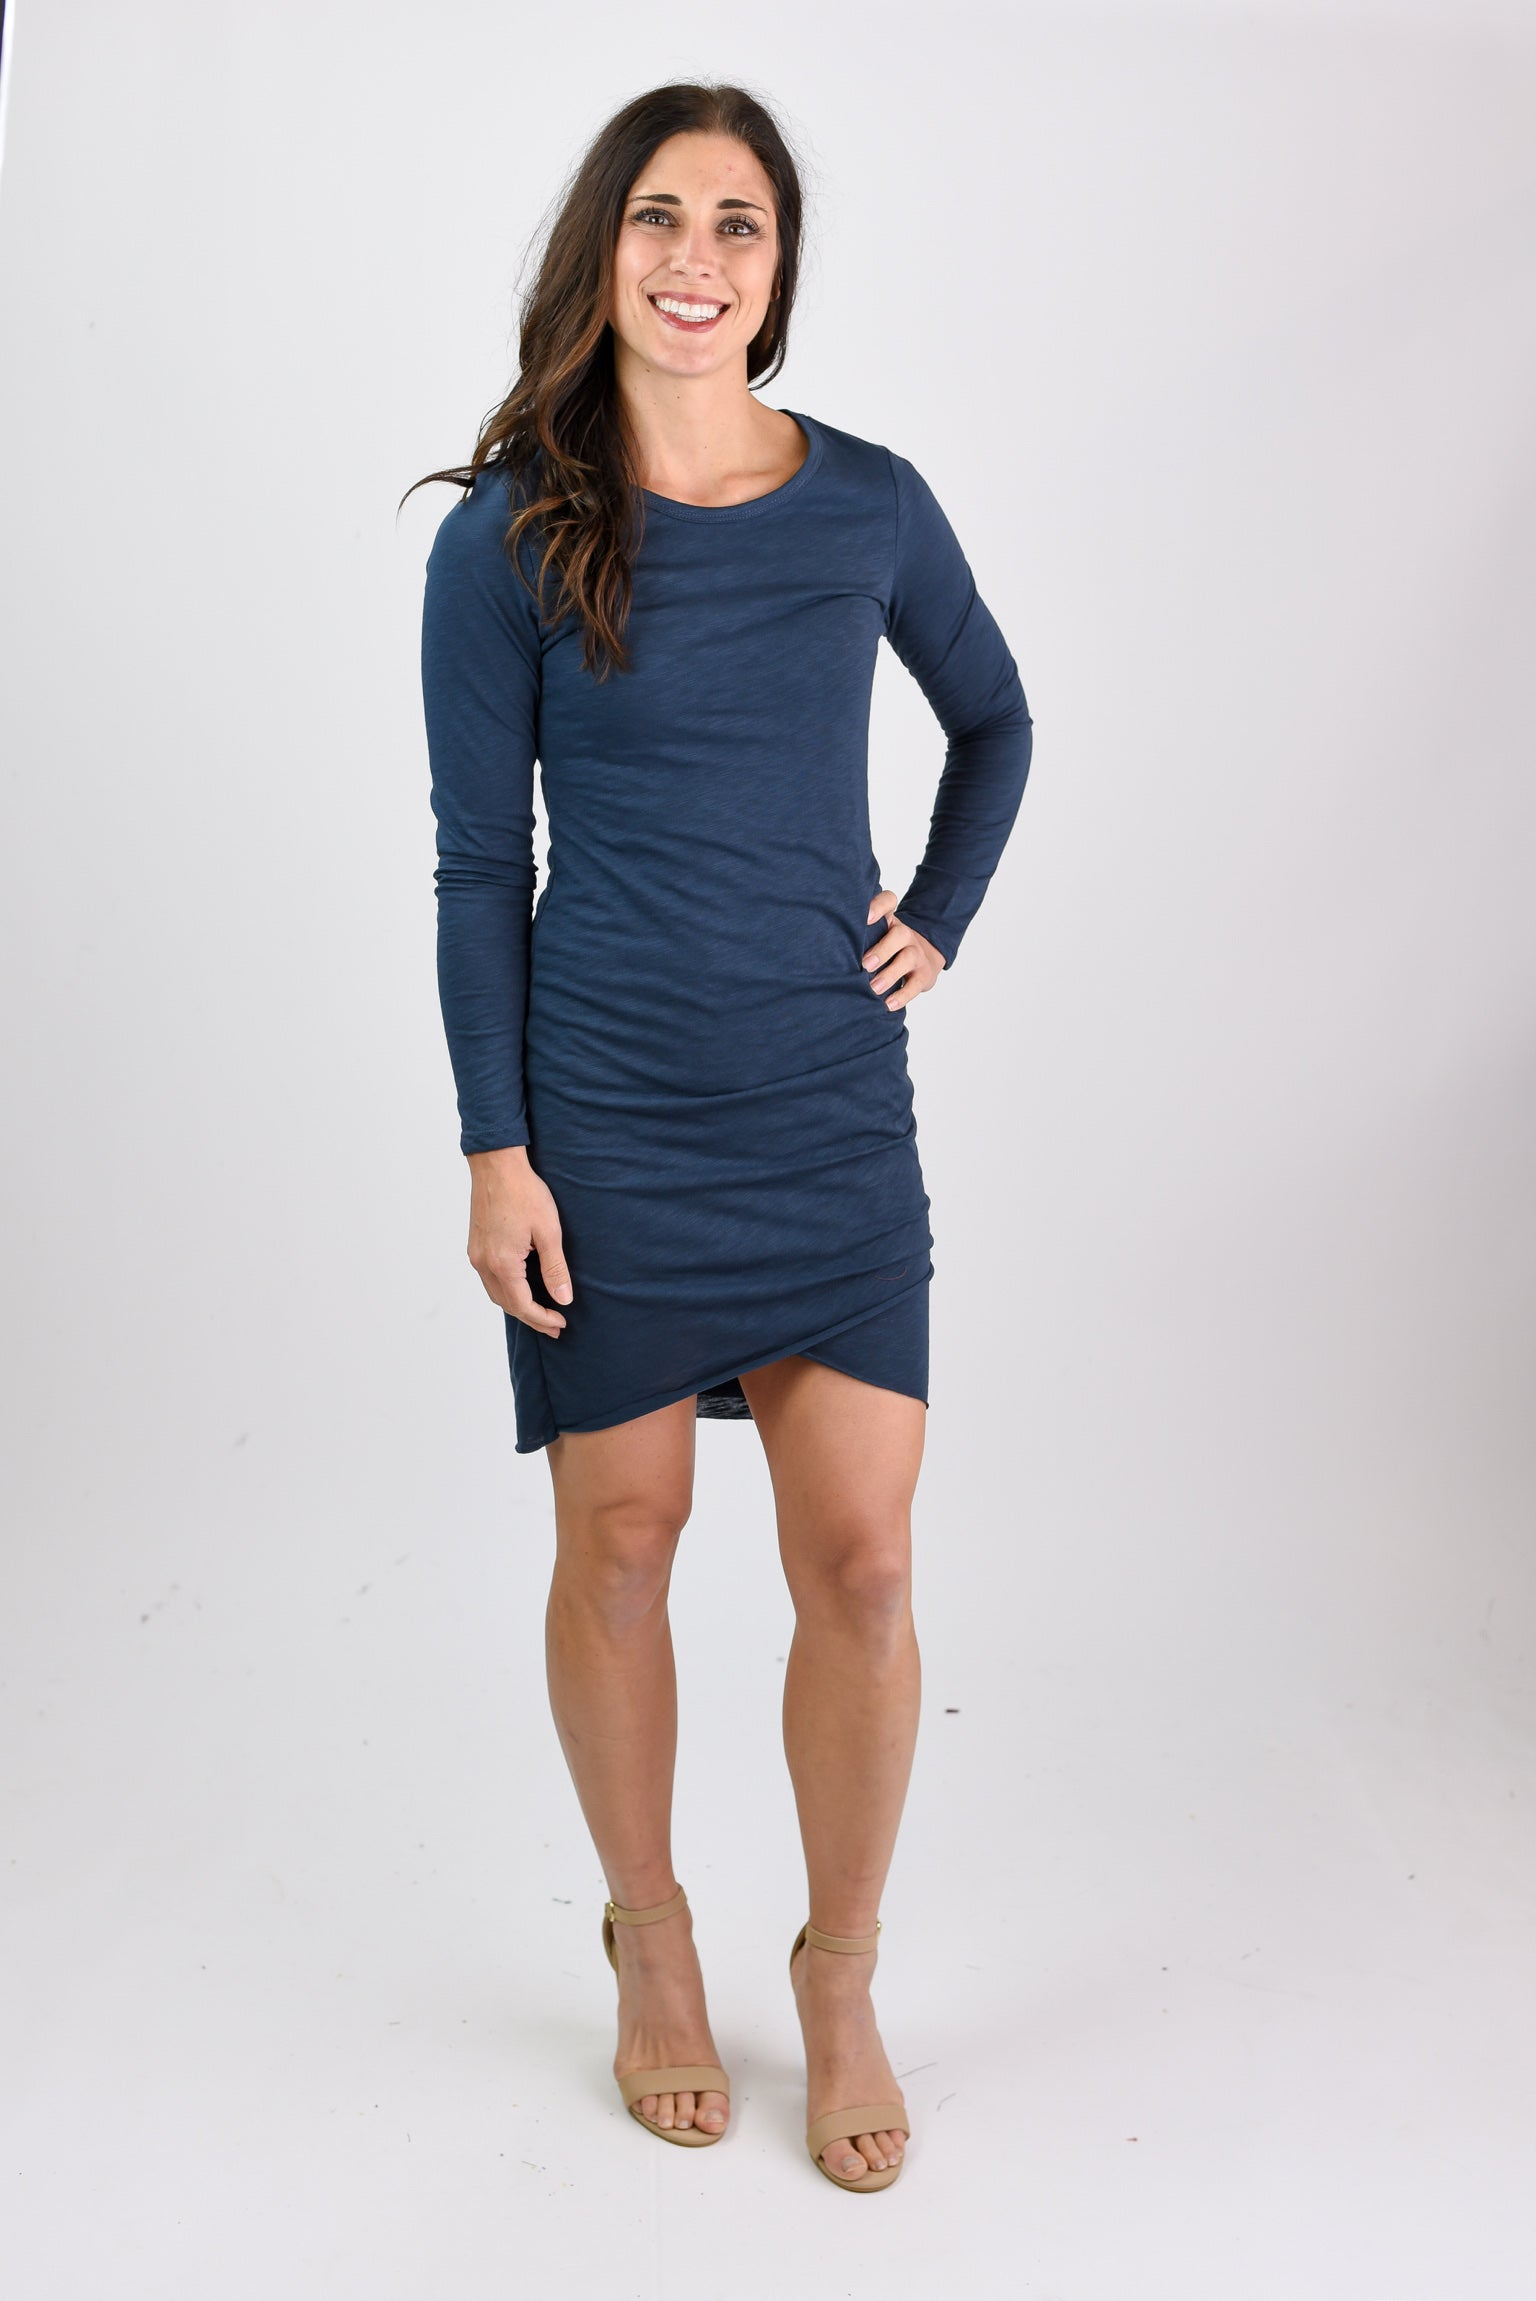 Got Your Attention Ruched Dress- Navy Long Sleeve